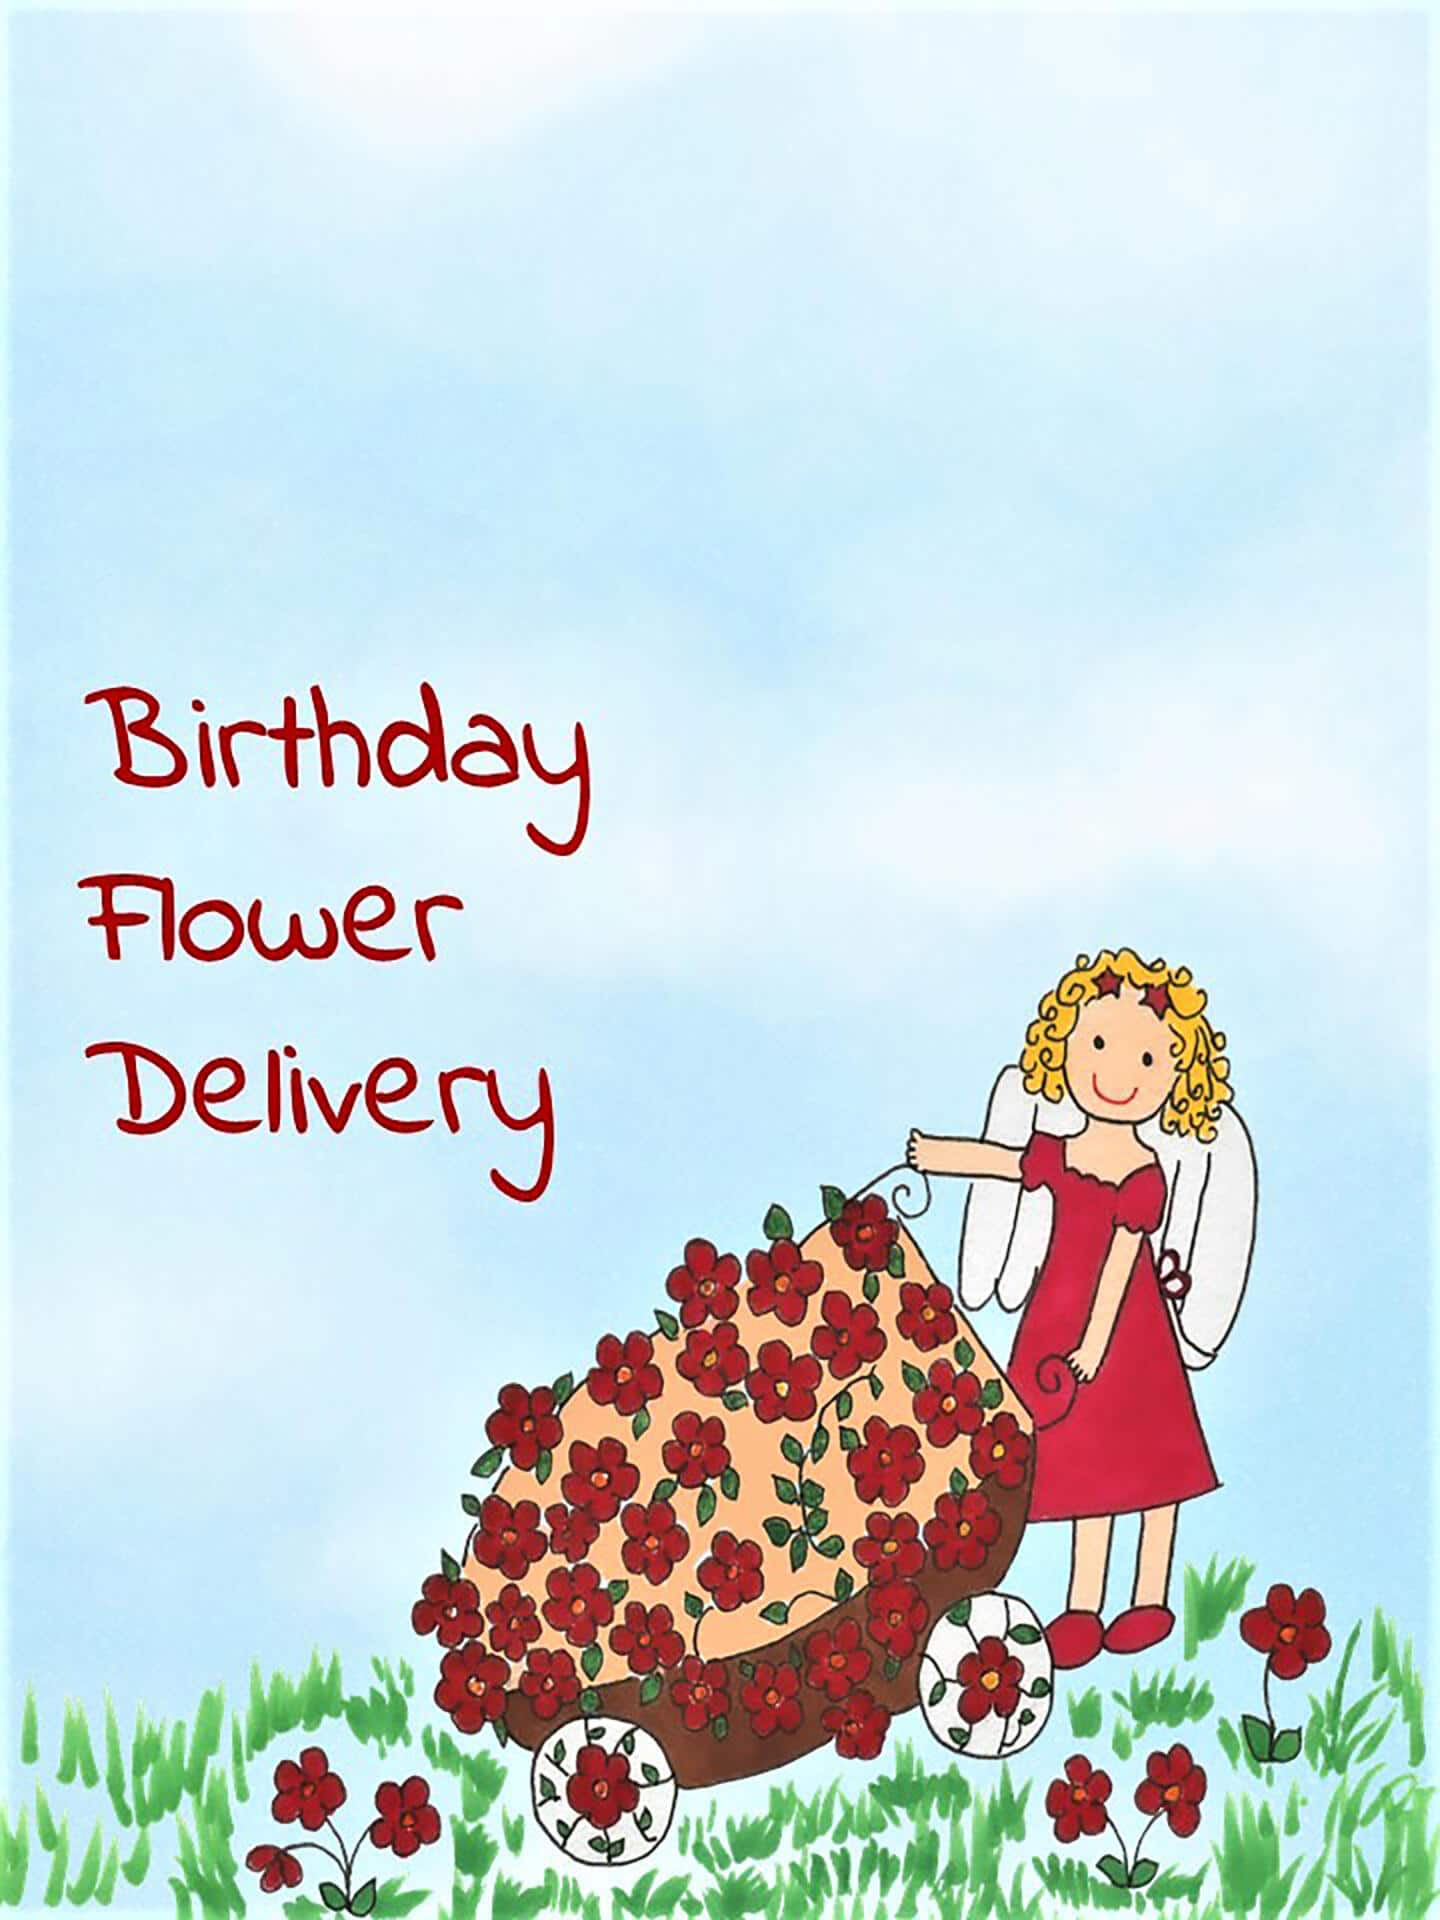 Birthday Flower Delivery eCard